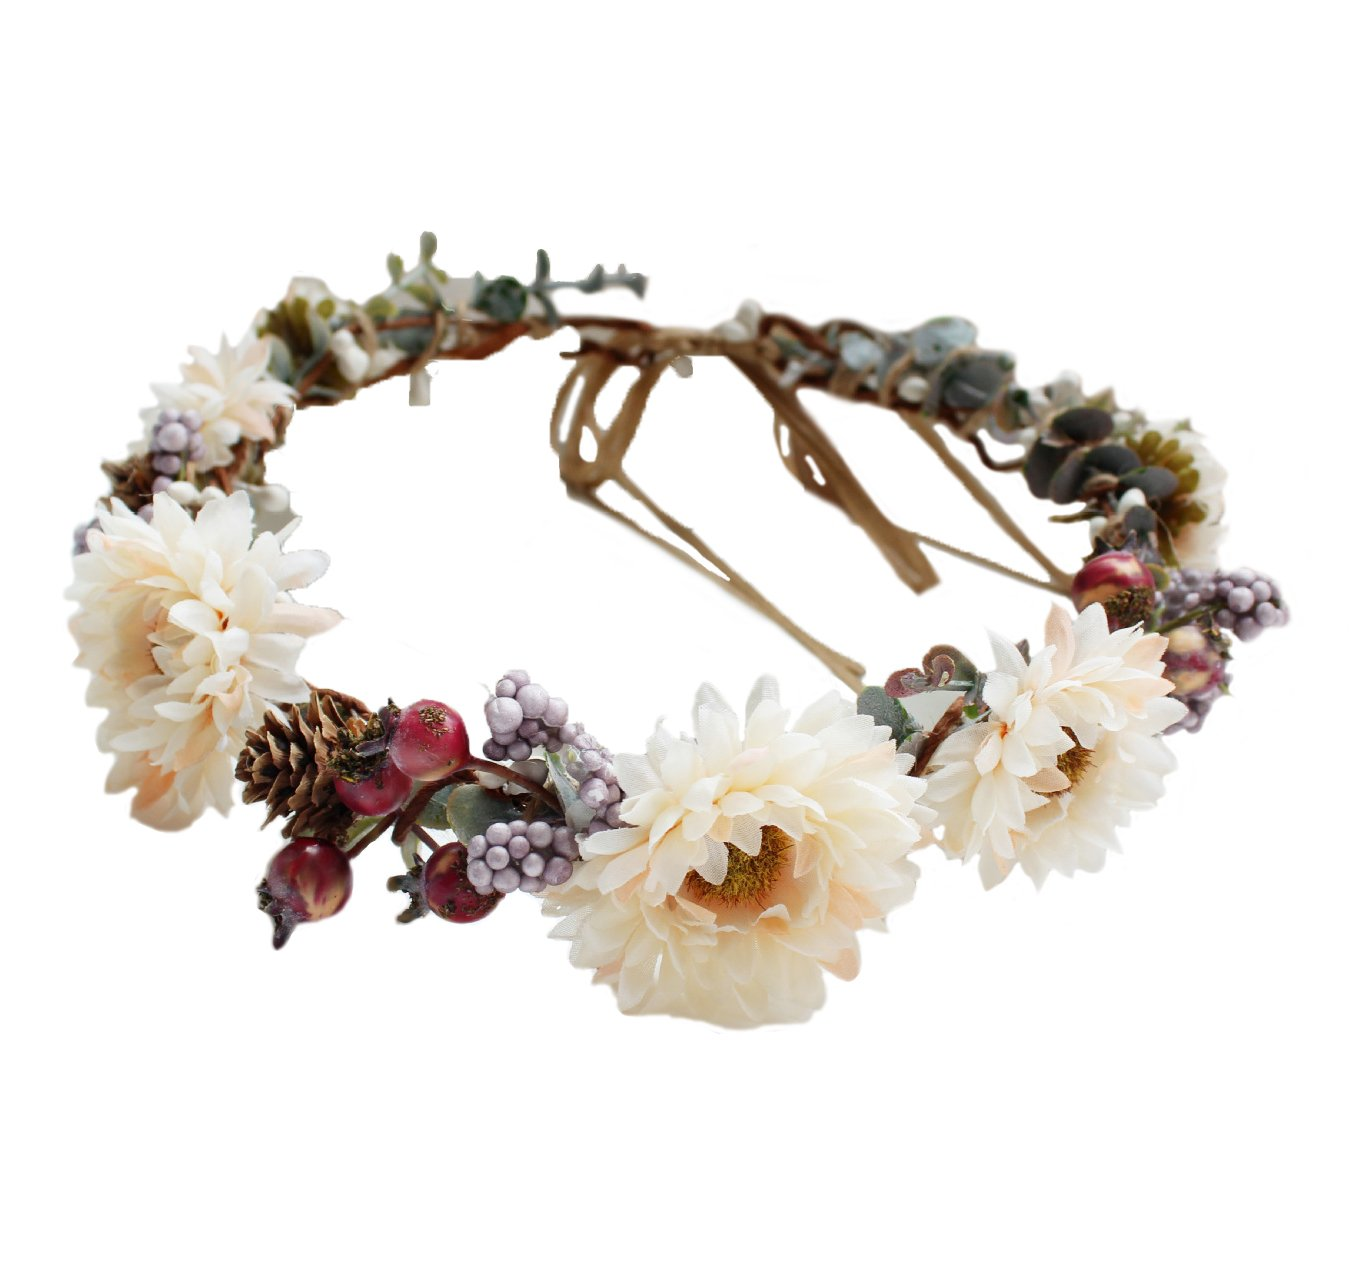 Vivivalue Boho Handmade Pinecone Flower Crown Wreath Halo Headband Floral Hair Garland Headpiece Festival Wedding Brown